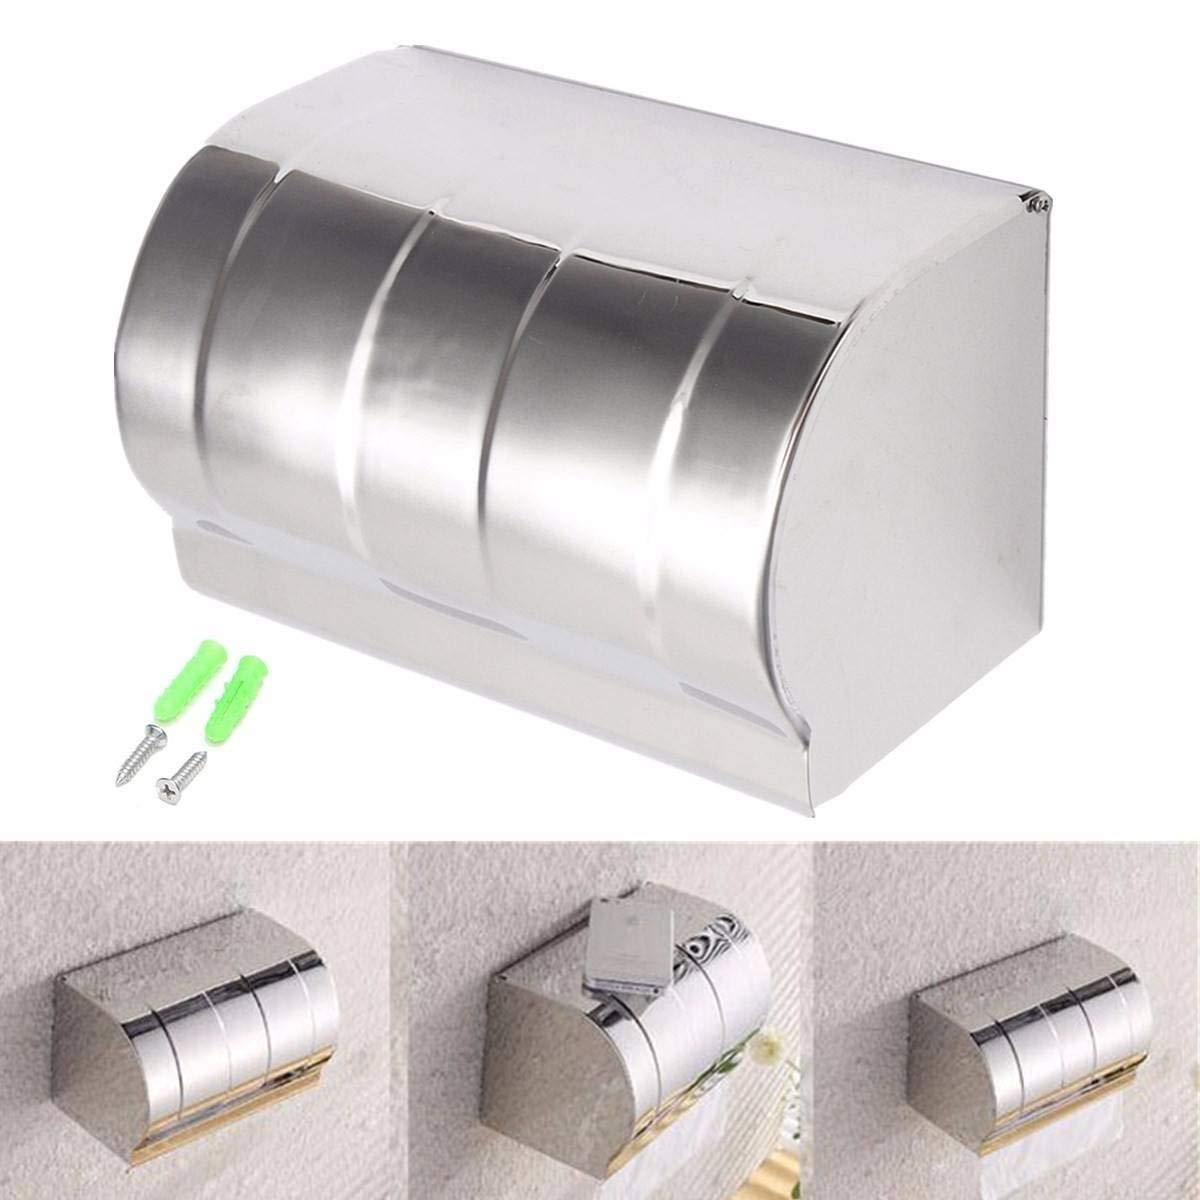 K20 Stainless Steel Roll Holder Wall Mounted Toilet Paper Holder - Hardware & Accessories Industrial Hardware- 1×Toilet Paper Holder, 1×Screw set